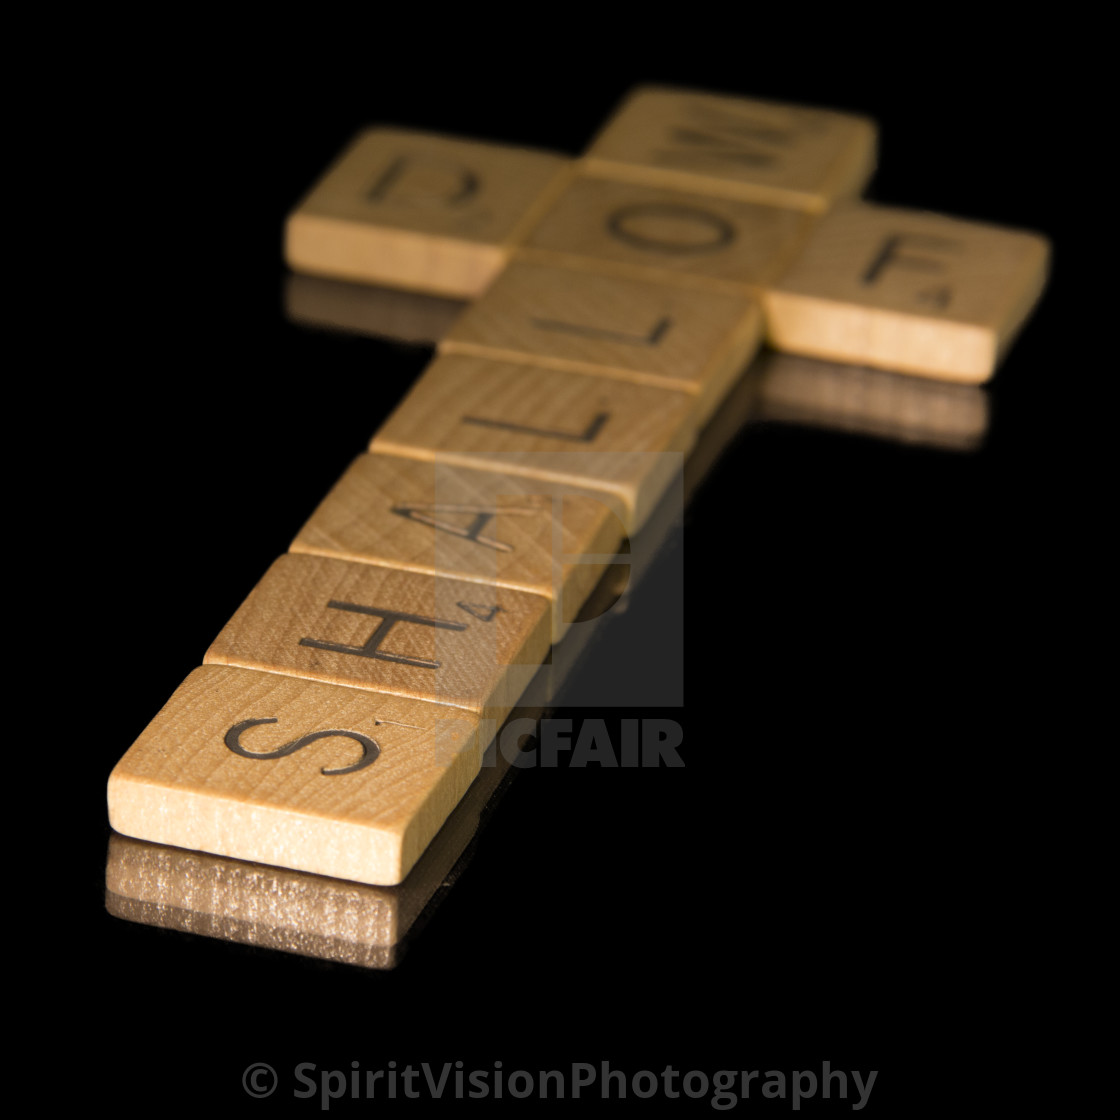 Let's Play a Game of Scrabble - License, download or print